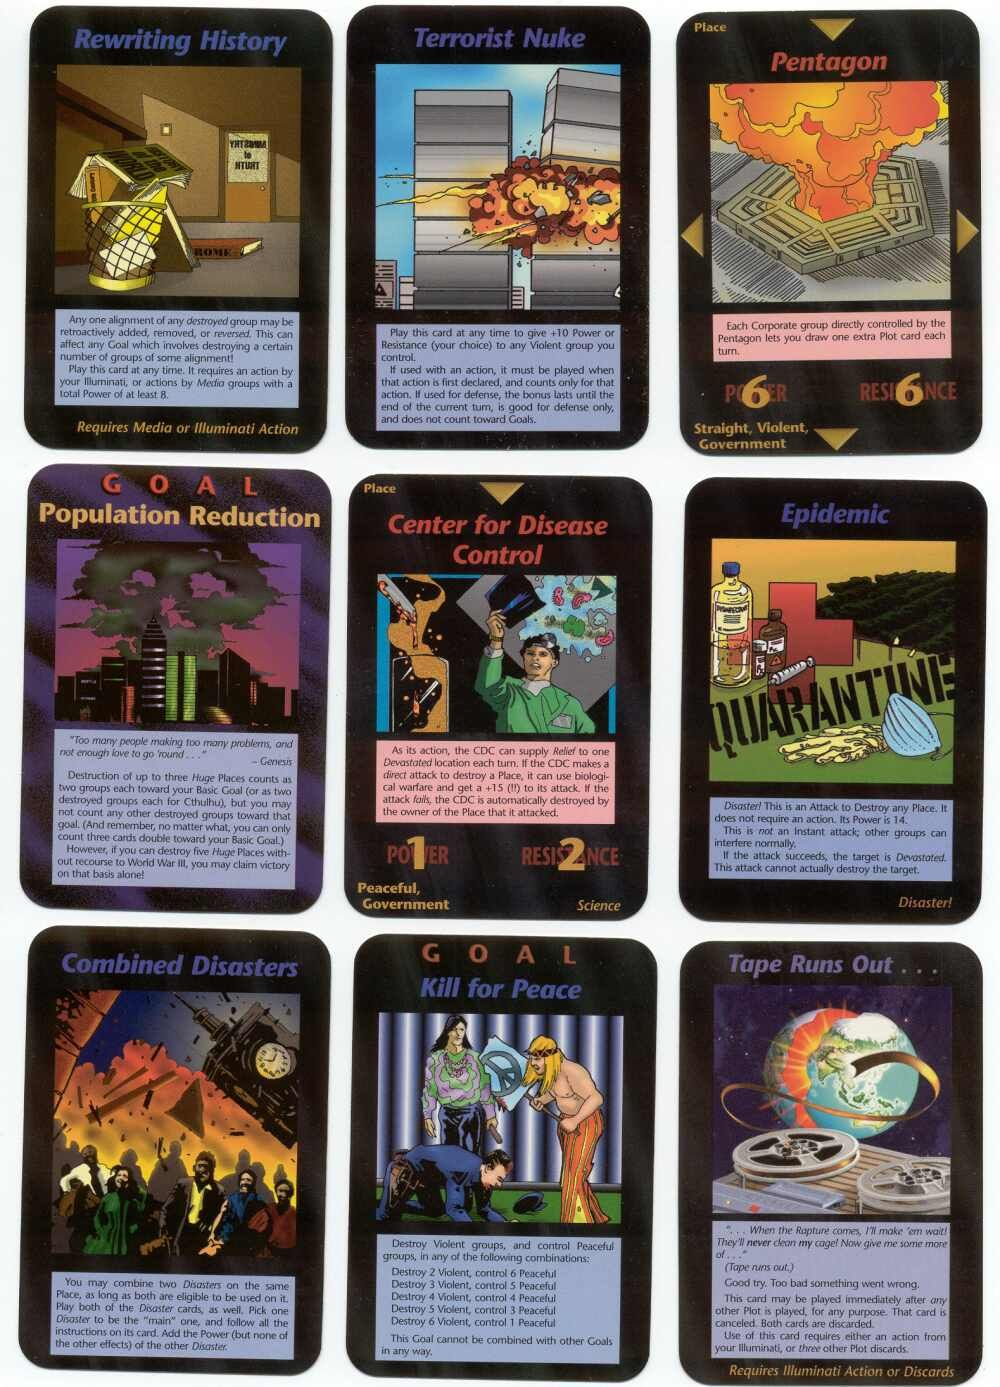 illuminati playing cards full deck pictures | Topic: the 90's Illuminati Card game.,. (Read 150291 times)